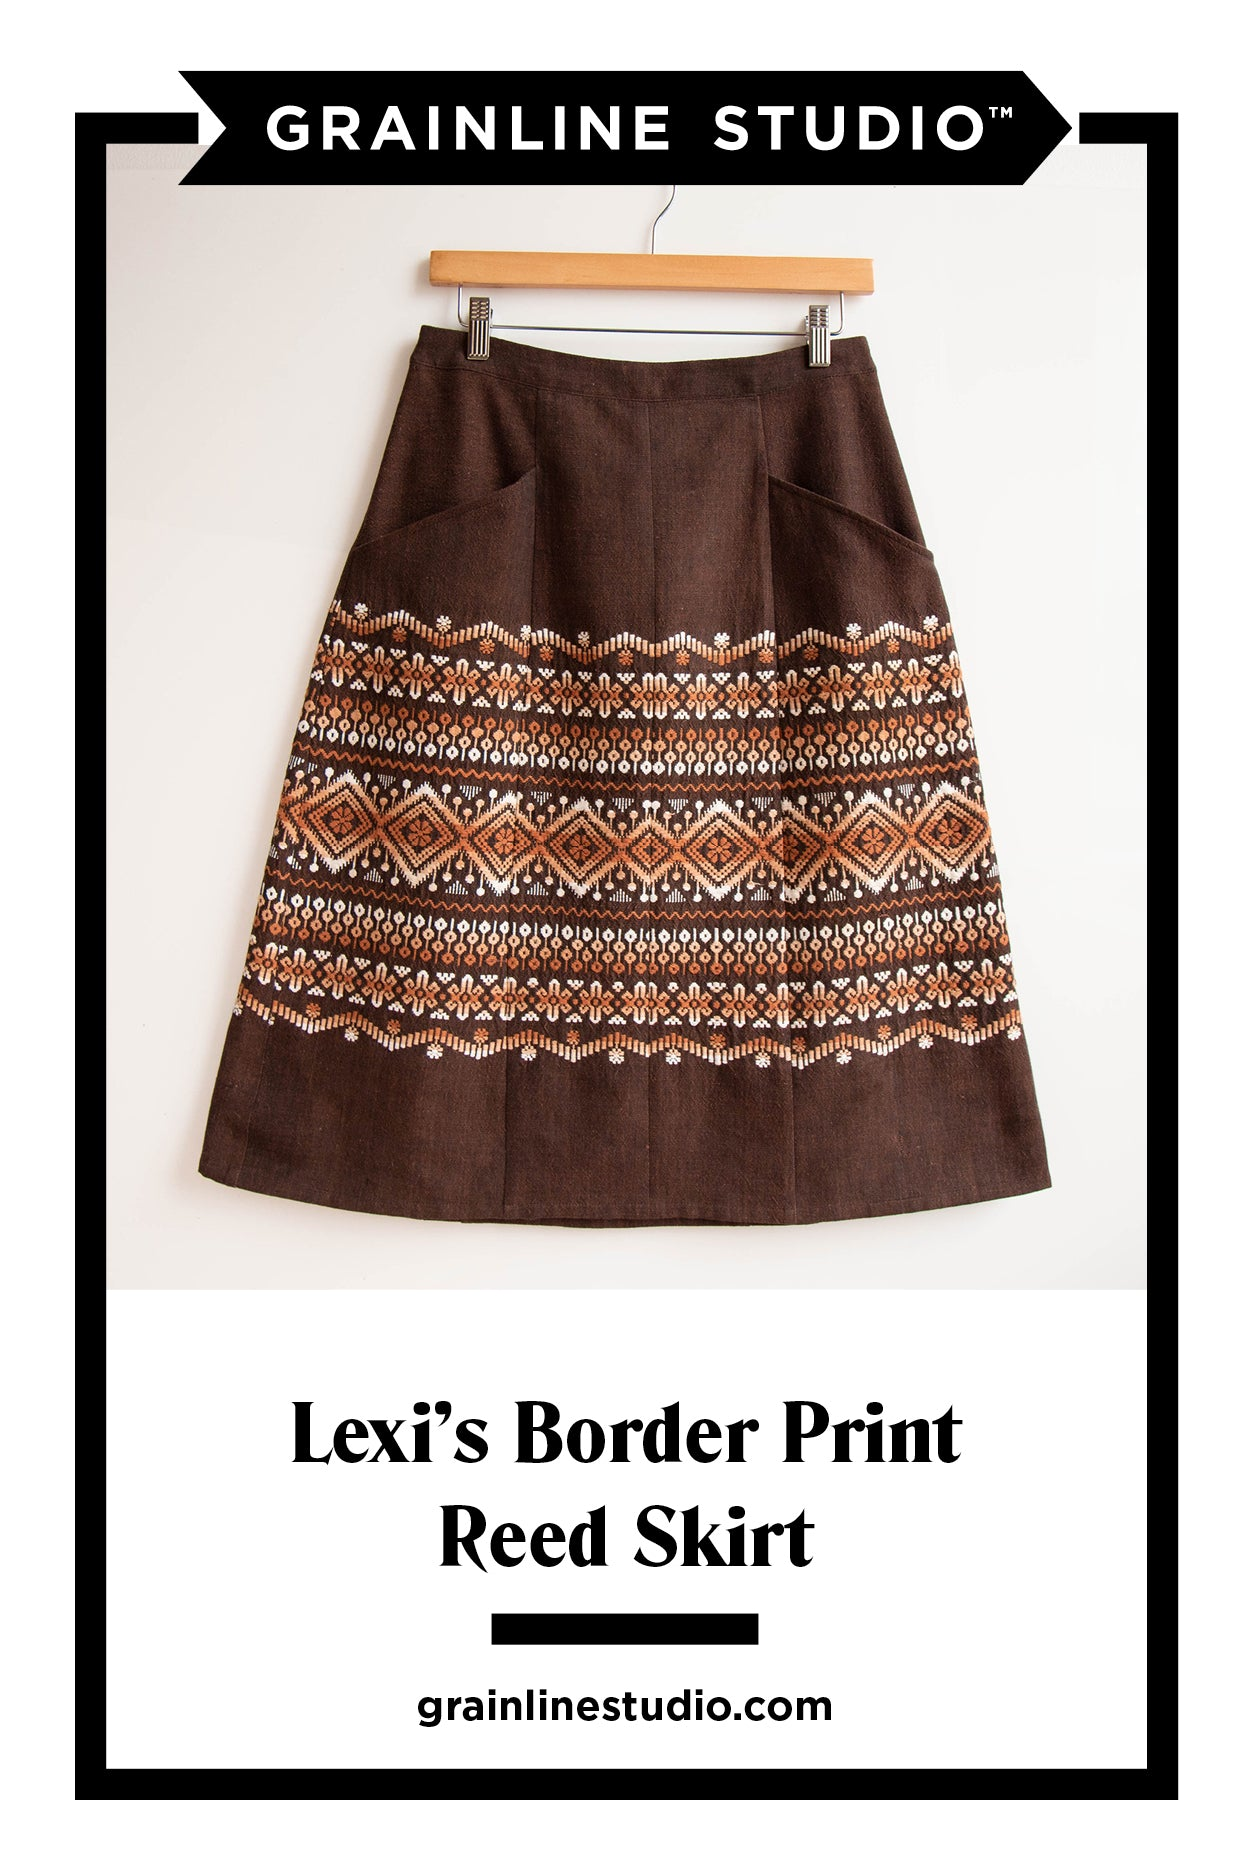 Lexi's Reed Skirt | Grainline Studio